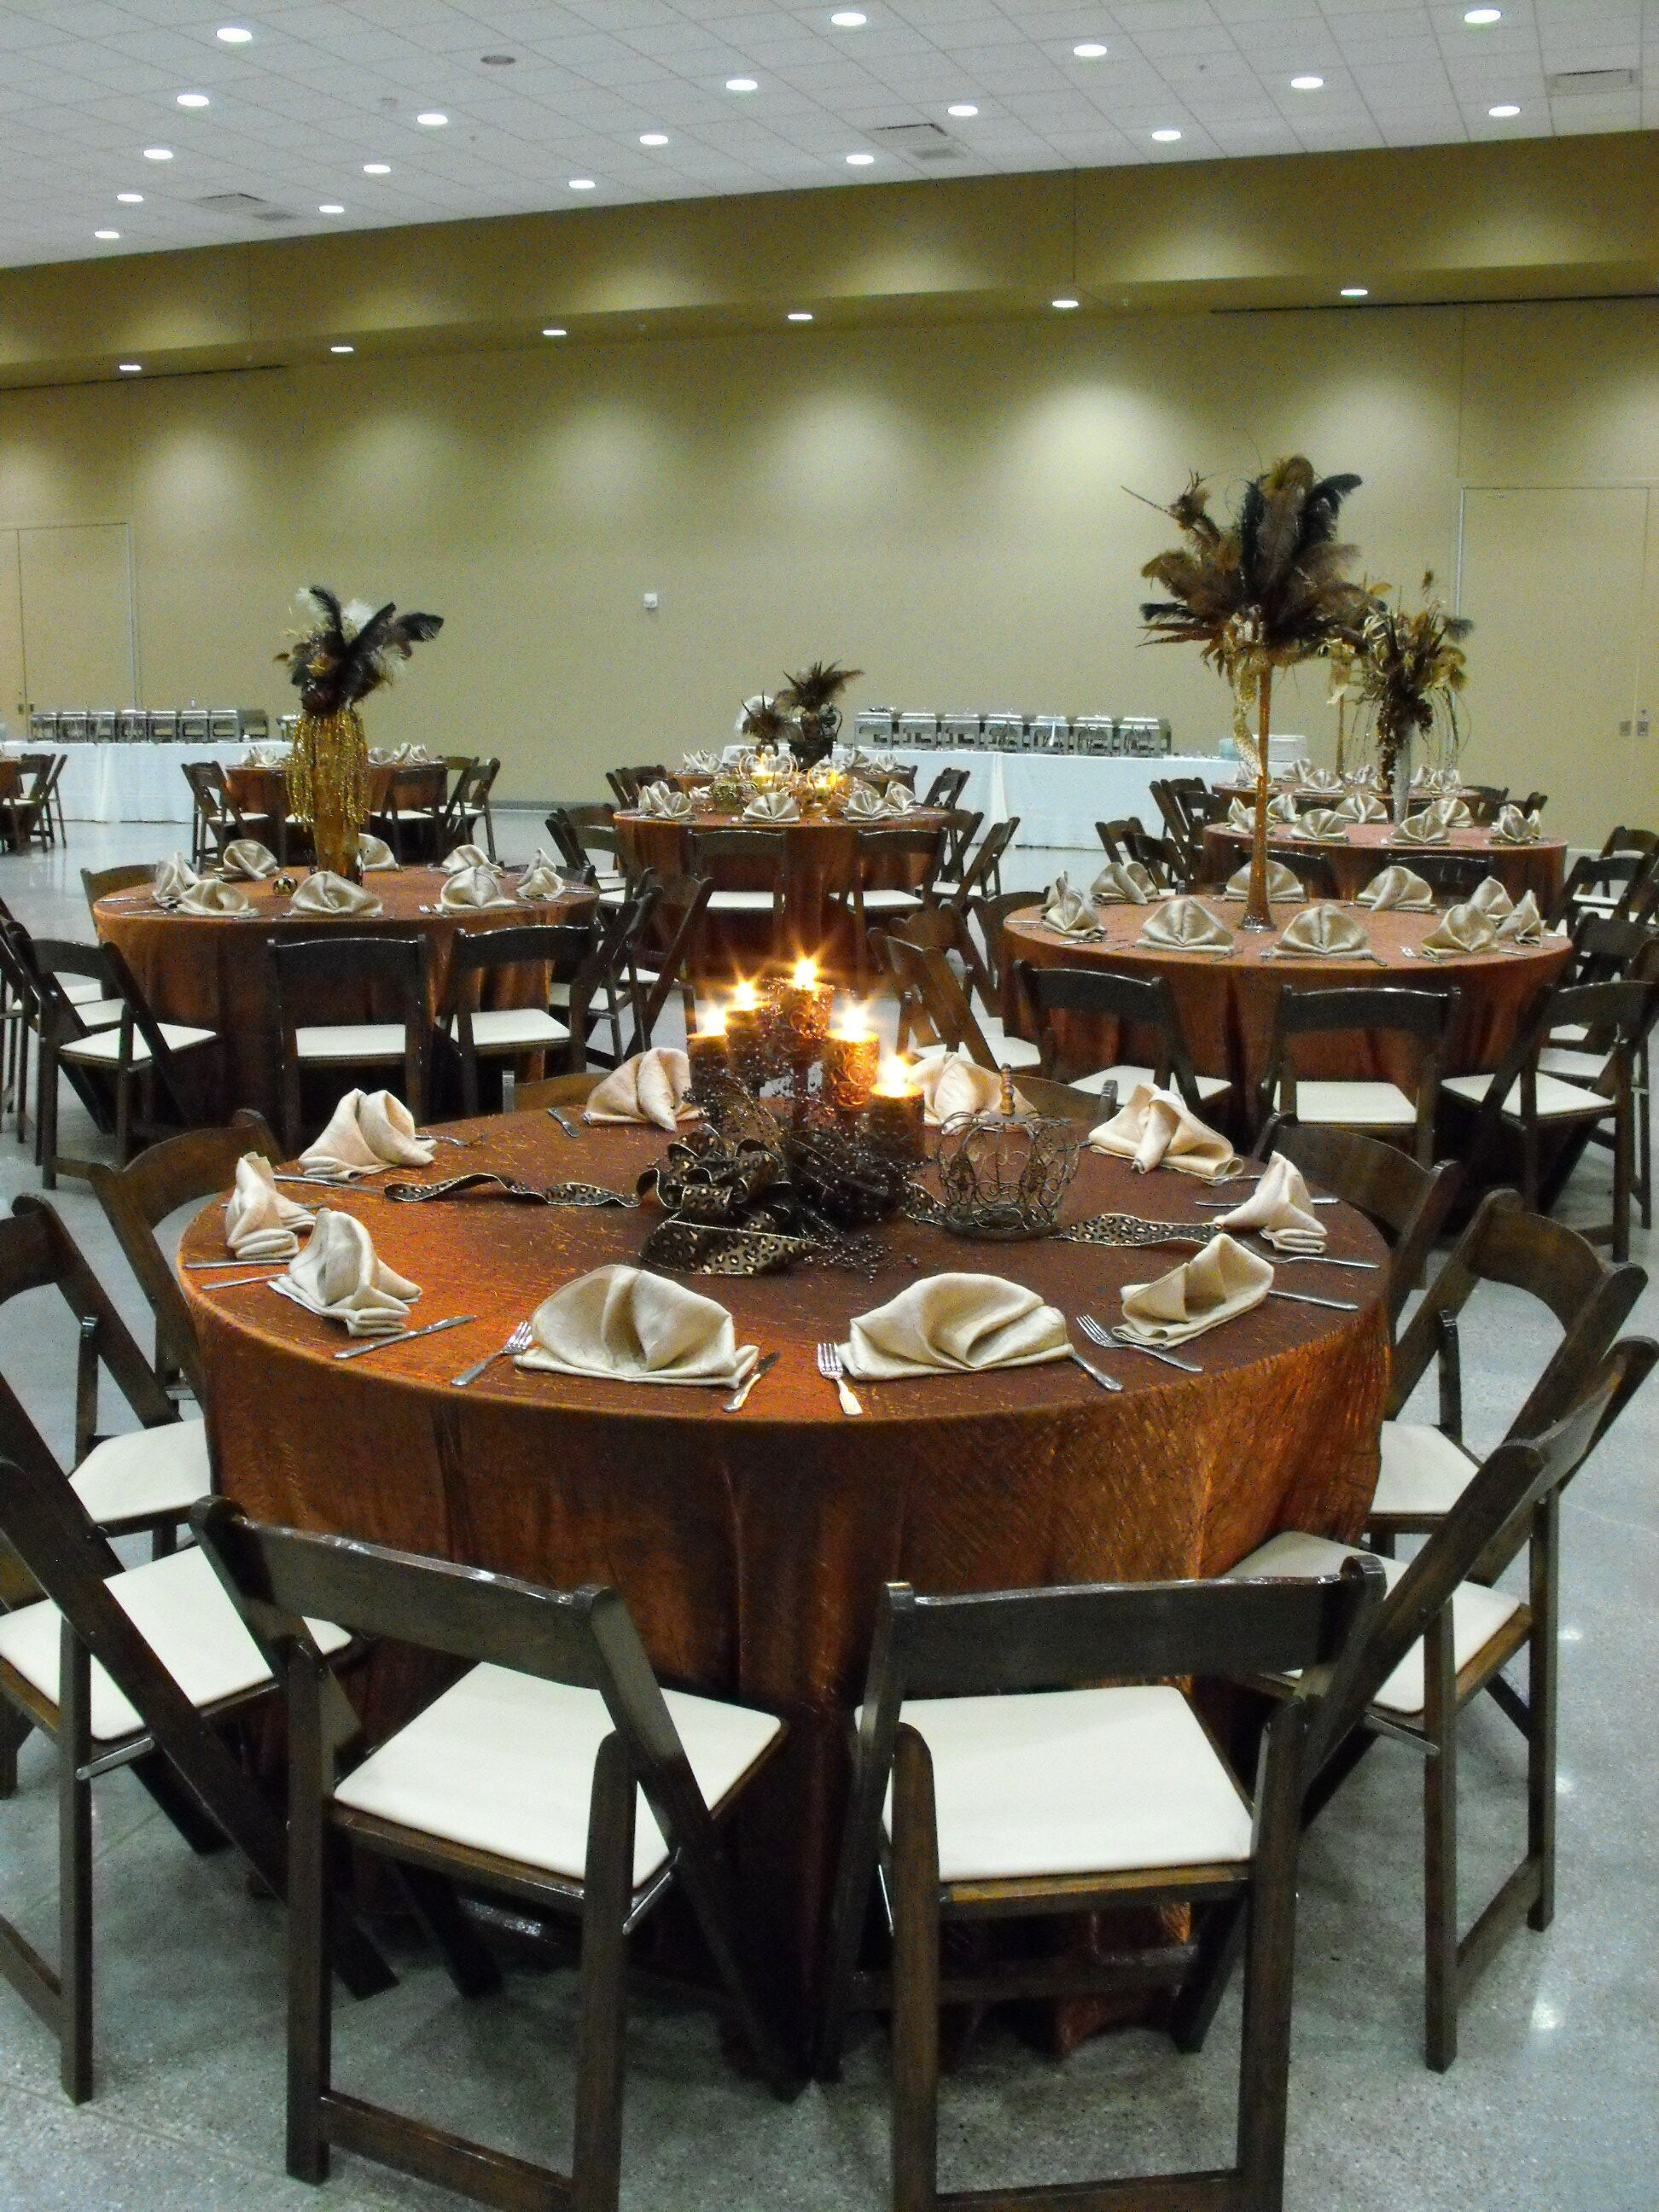 Wedding reception venues in oklahoma city ok the knot glenpool conference center junglespirit Choice Image